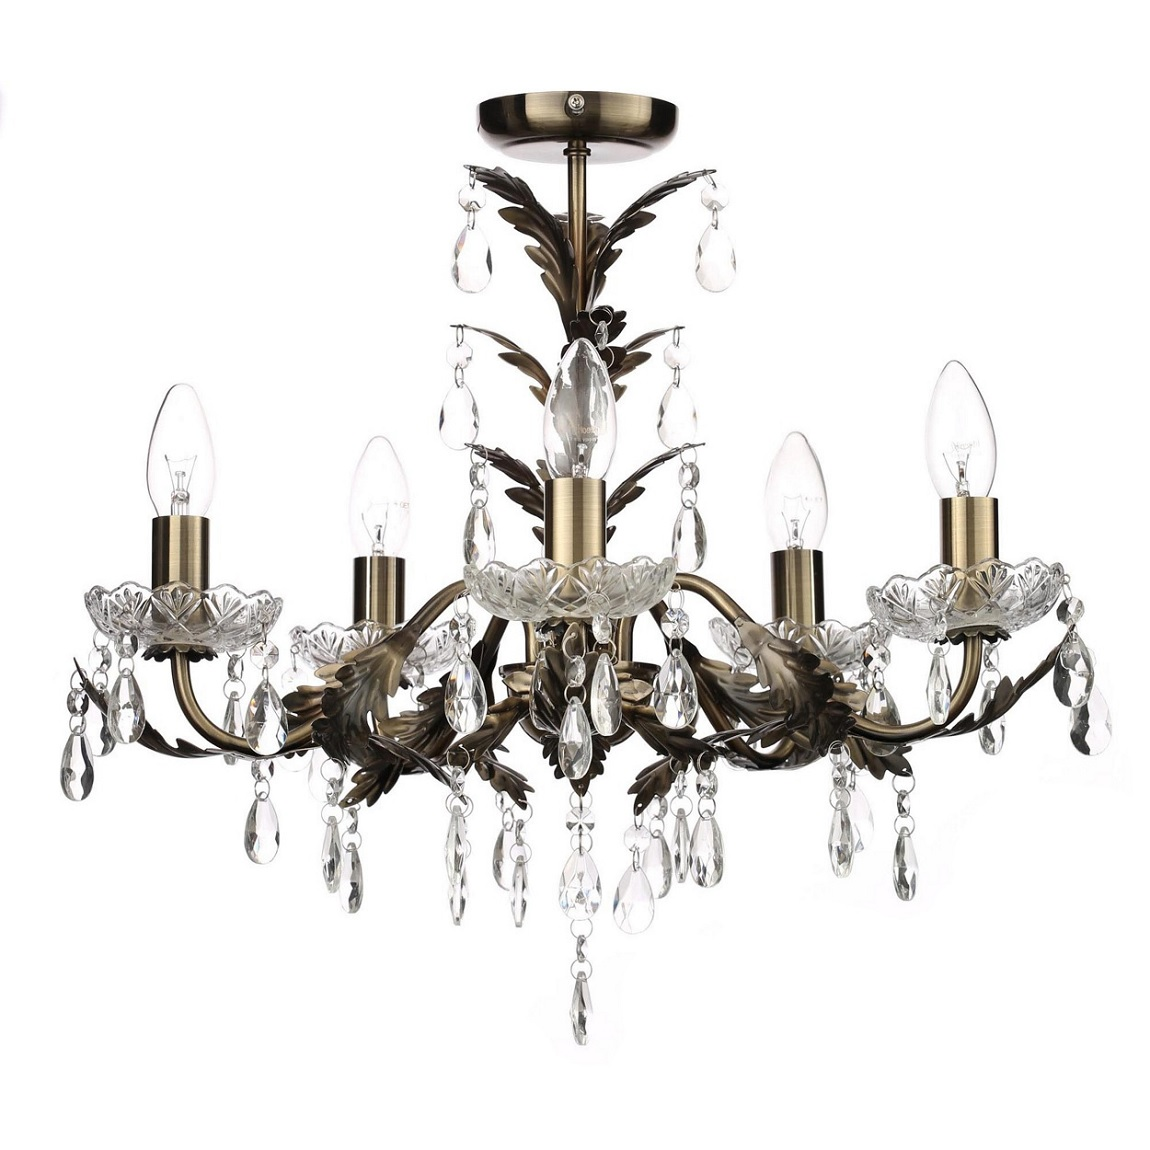 Debenhams Home Collection 'Paisley' Flush Chandelier